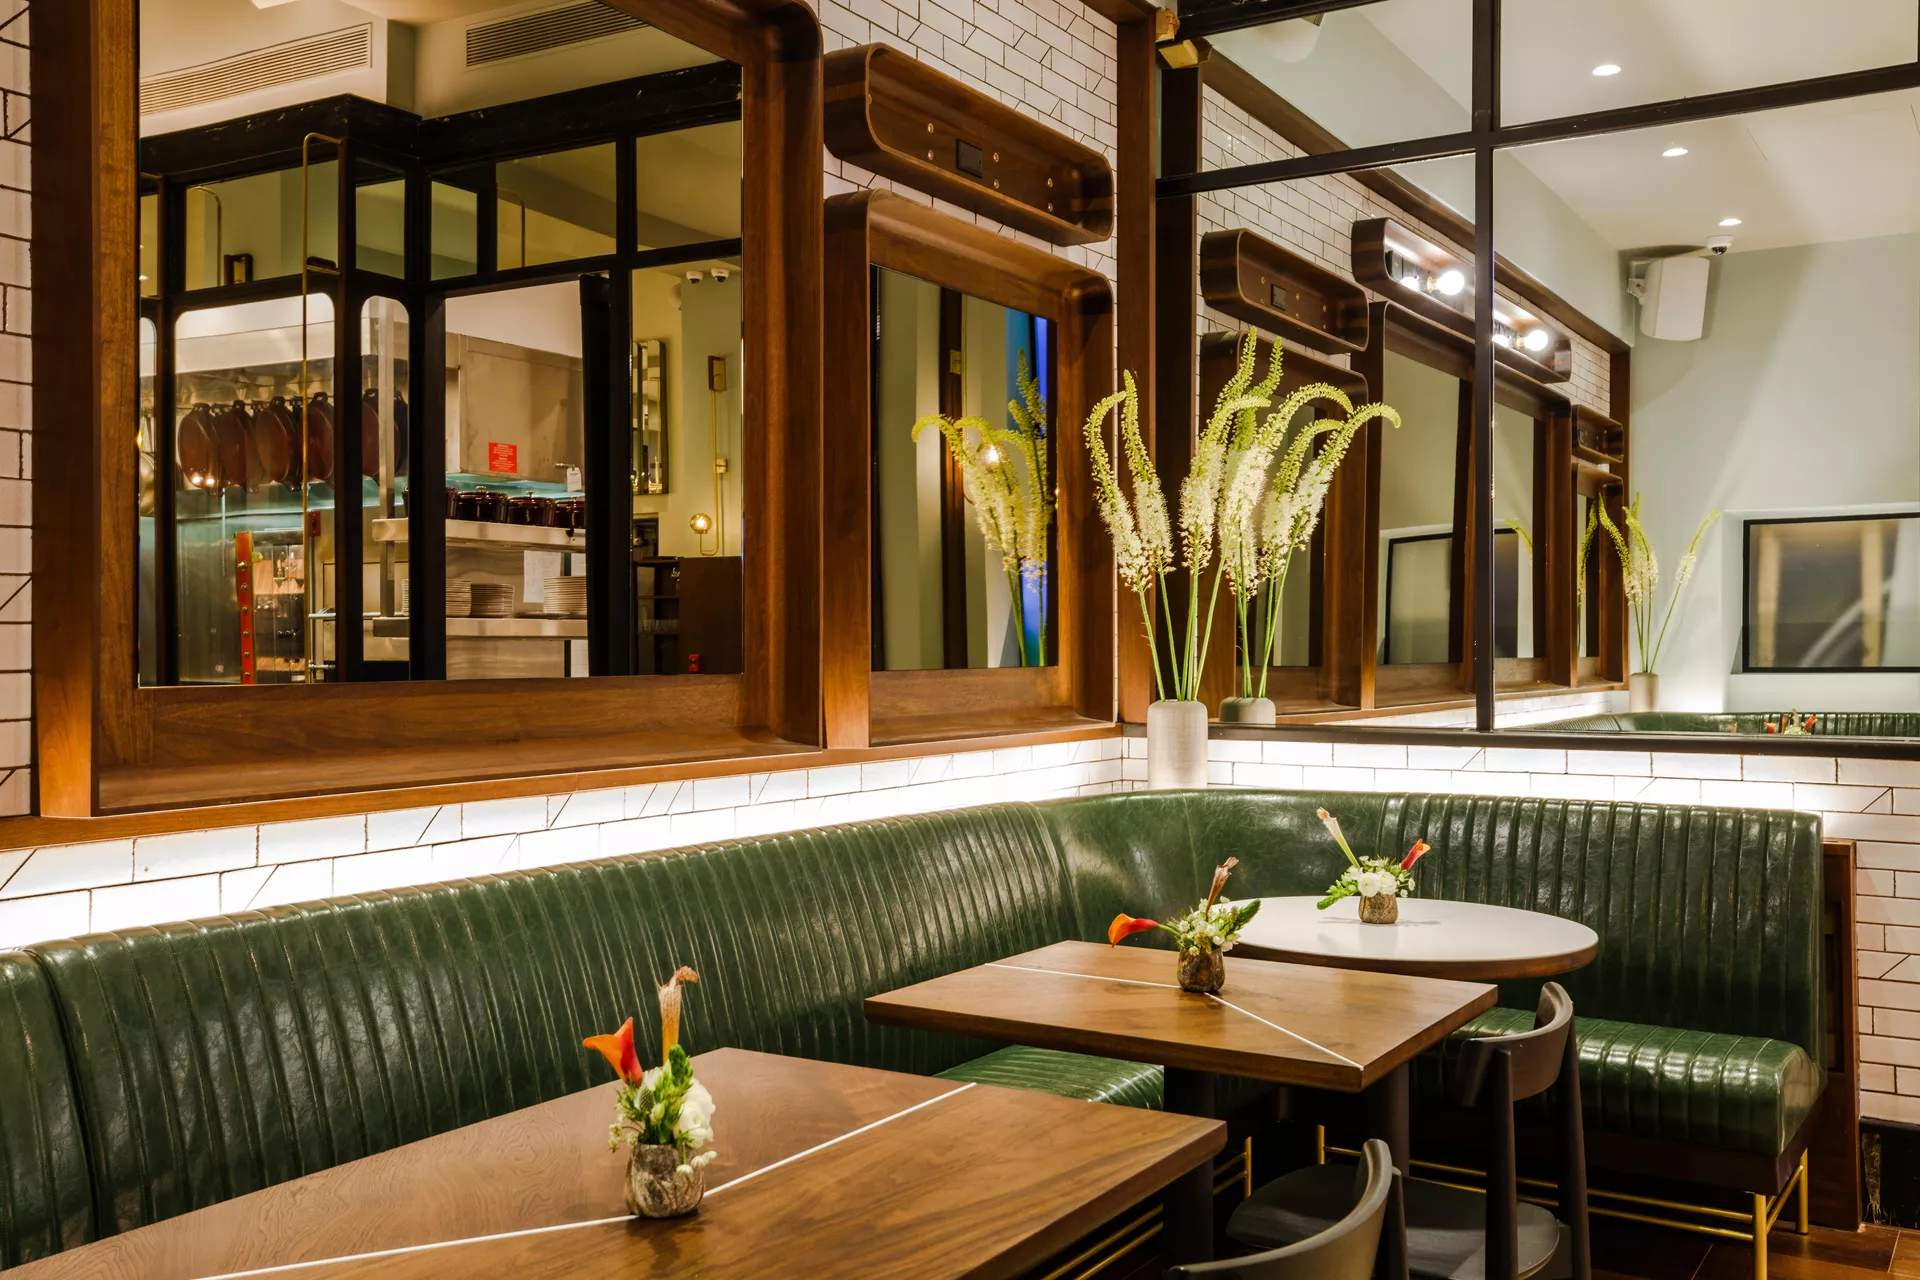 Eater Emerald Green Is The New Restaurant Design Power Color Food Media And News Hungry Onion